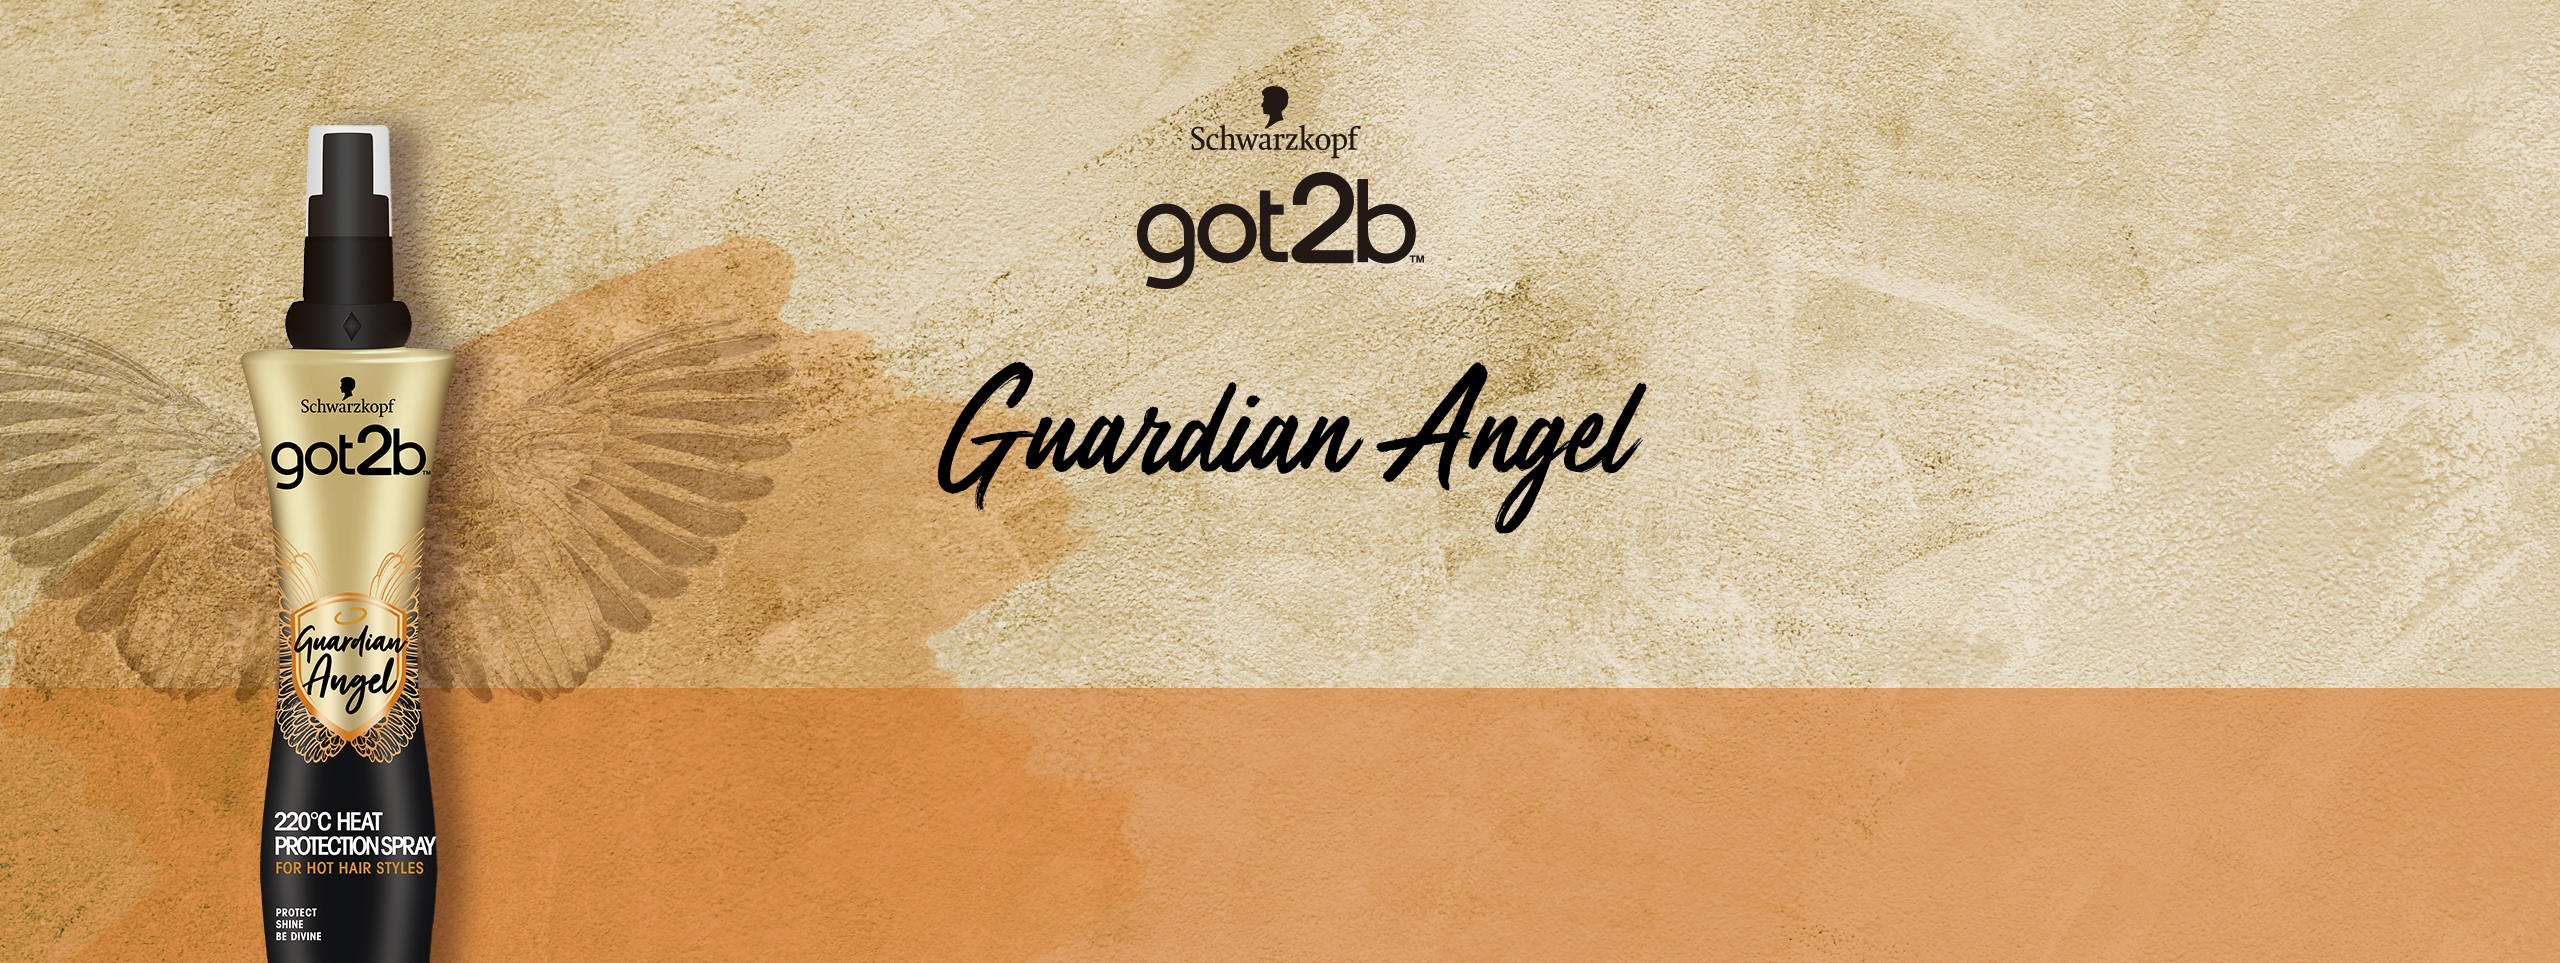 Guardian_angel_BG_2560x963